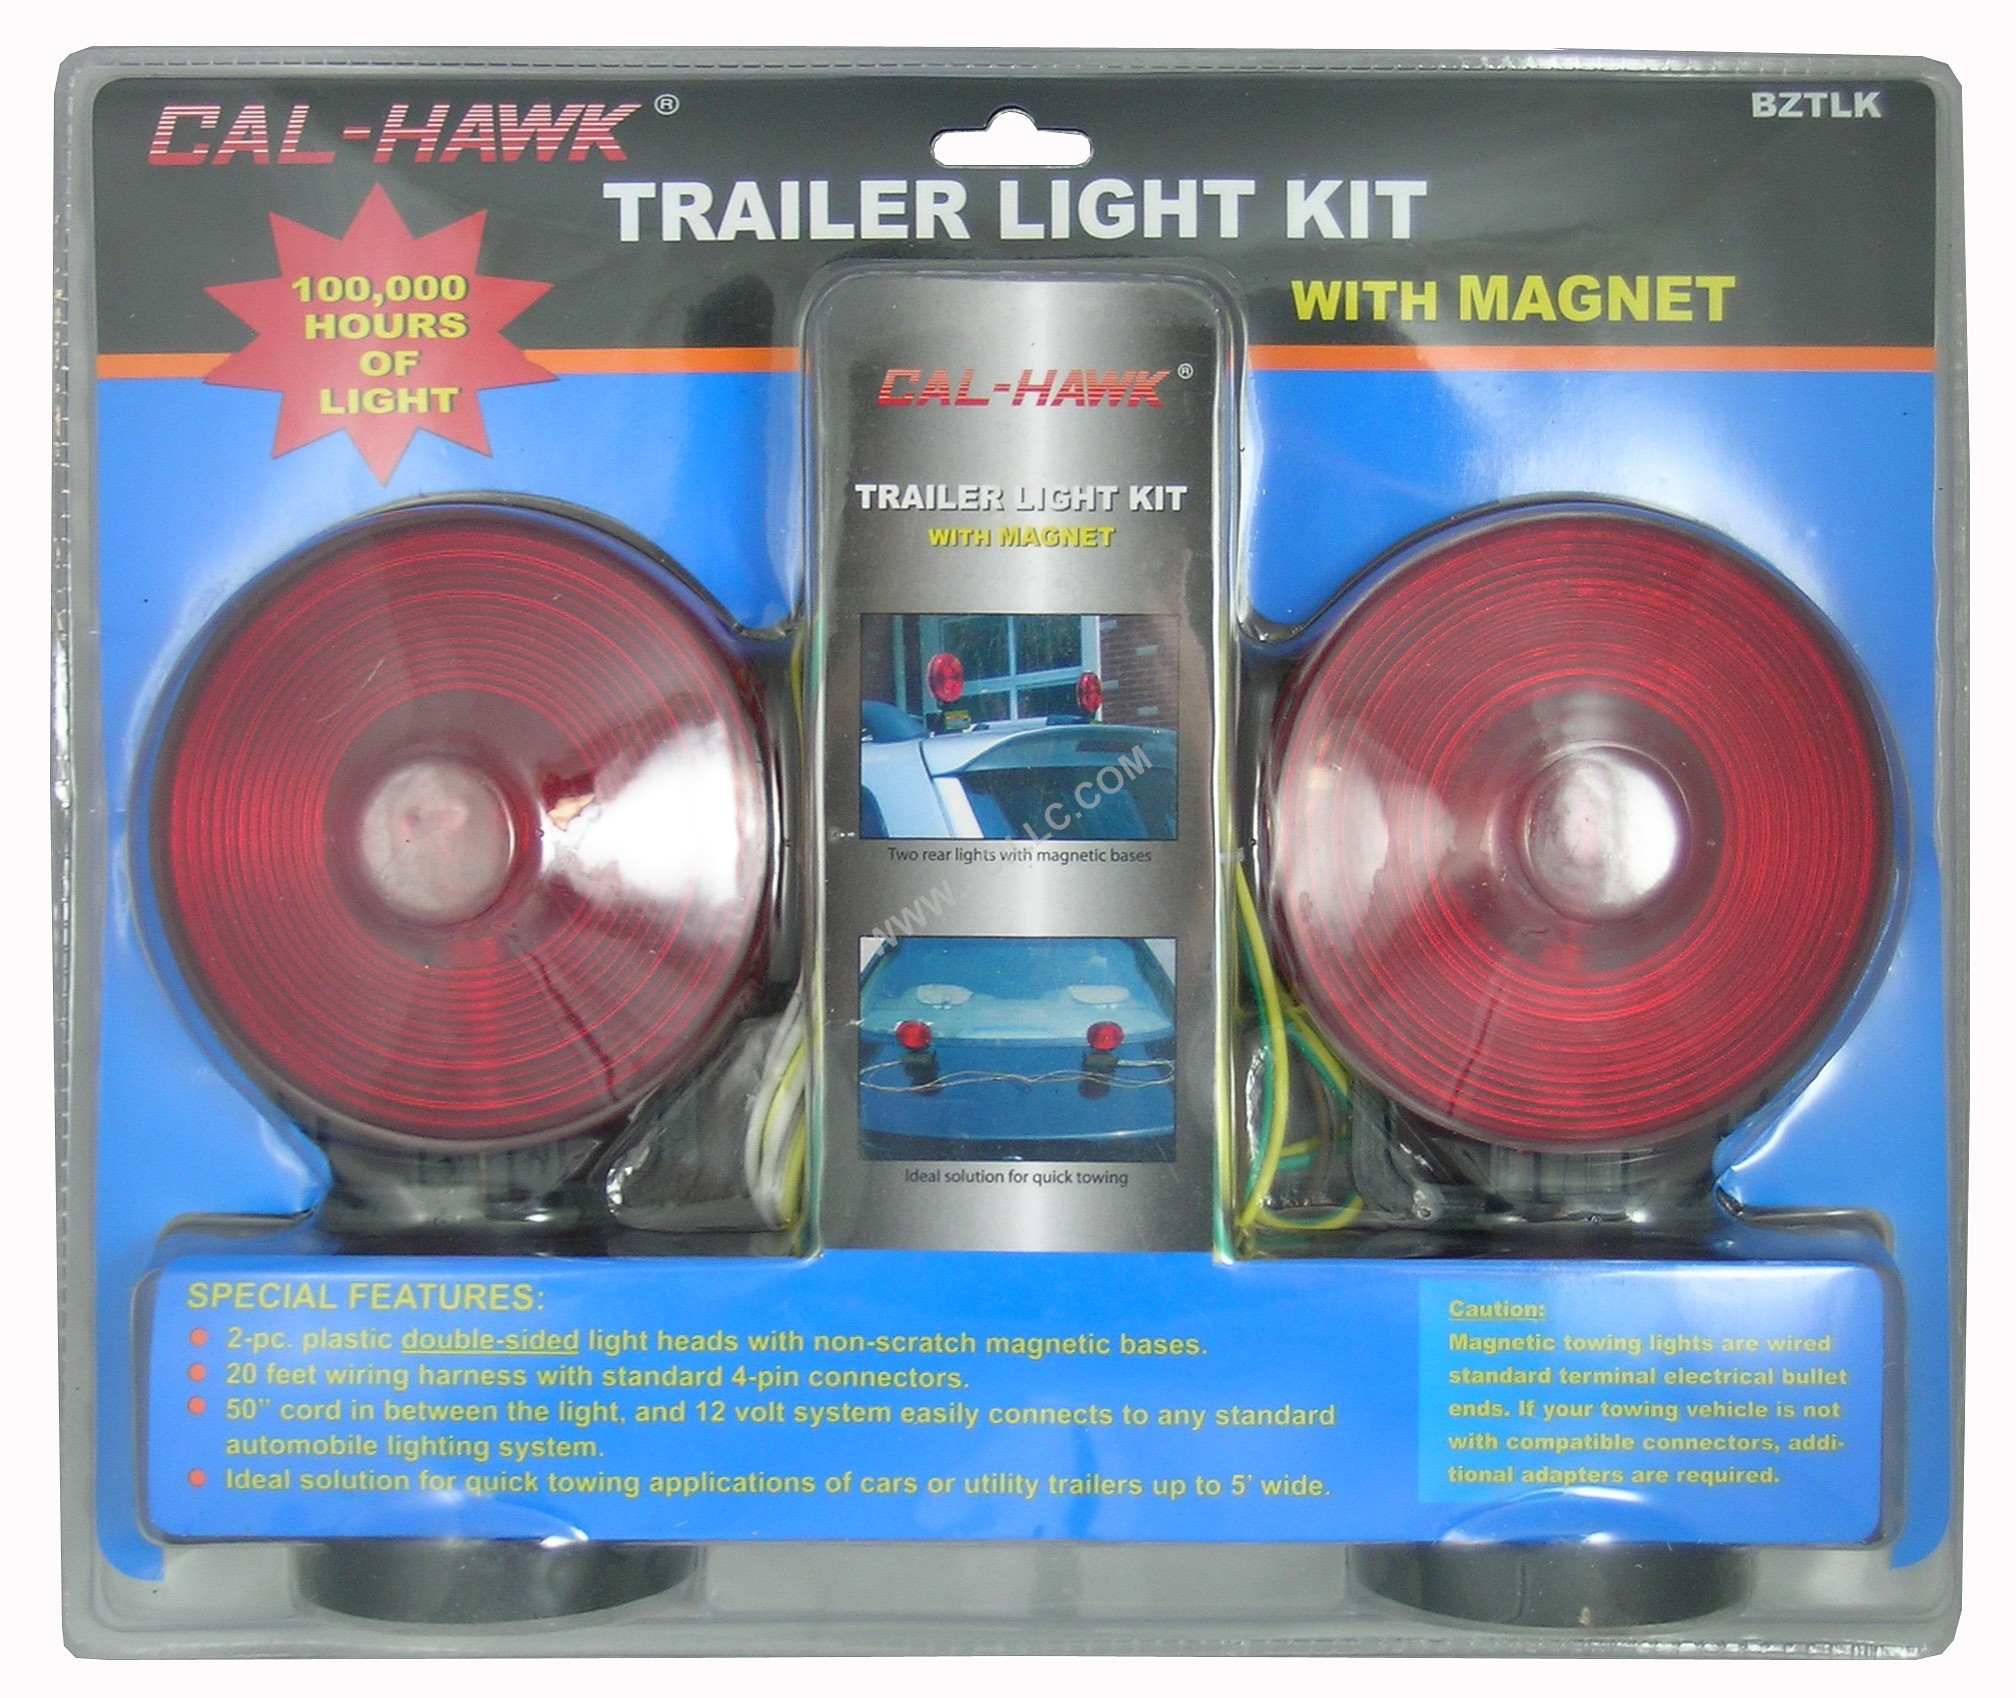 Magnetic Trailer Light Kit Tools Towing Lights Wholesale Utility Wire Harness